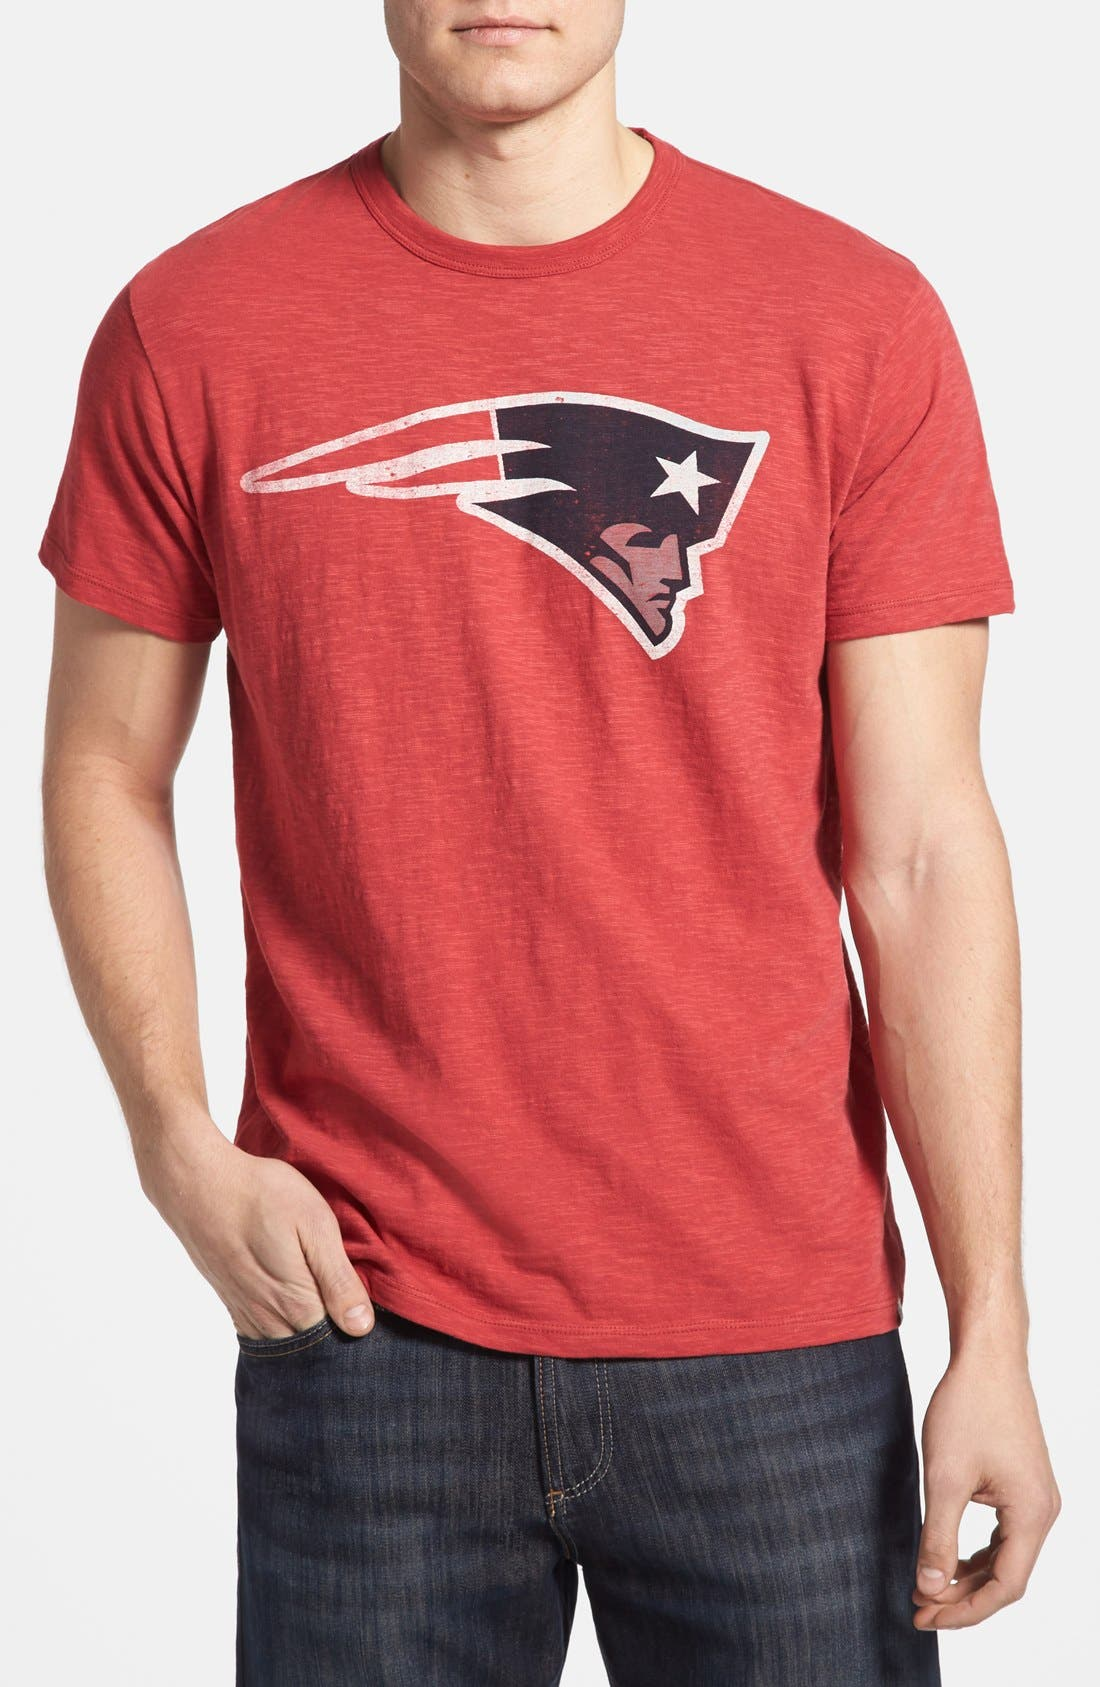 Alternate Image 1 Selected - 47 Brand 'New England Patriots - Scrum' Graphic T-Shirt